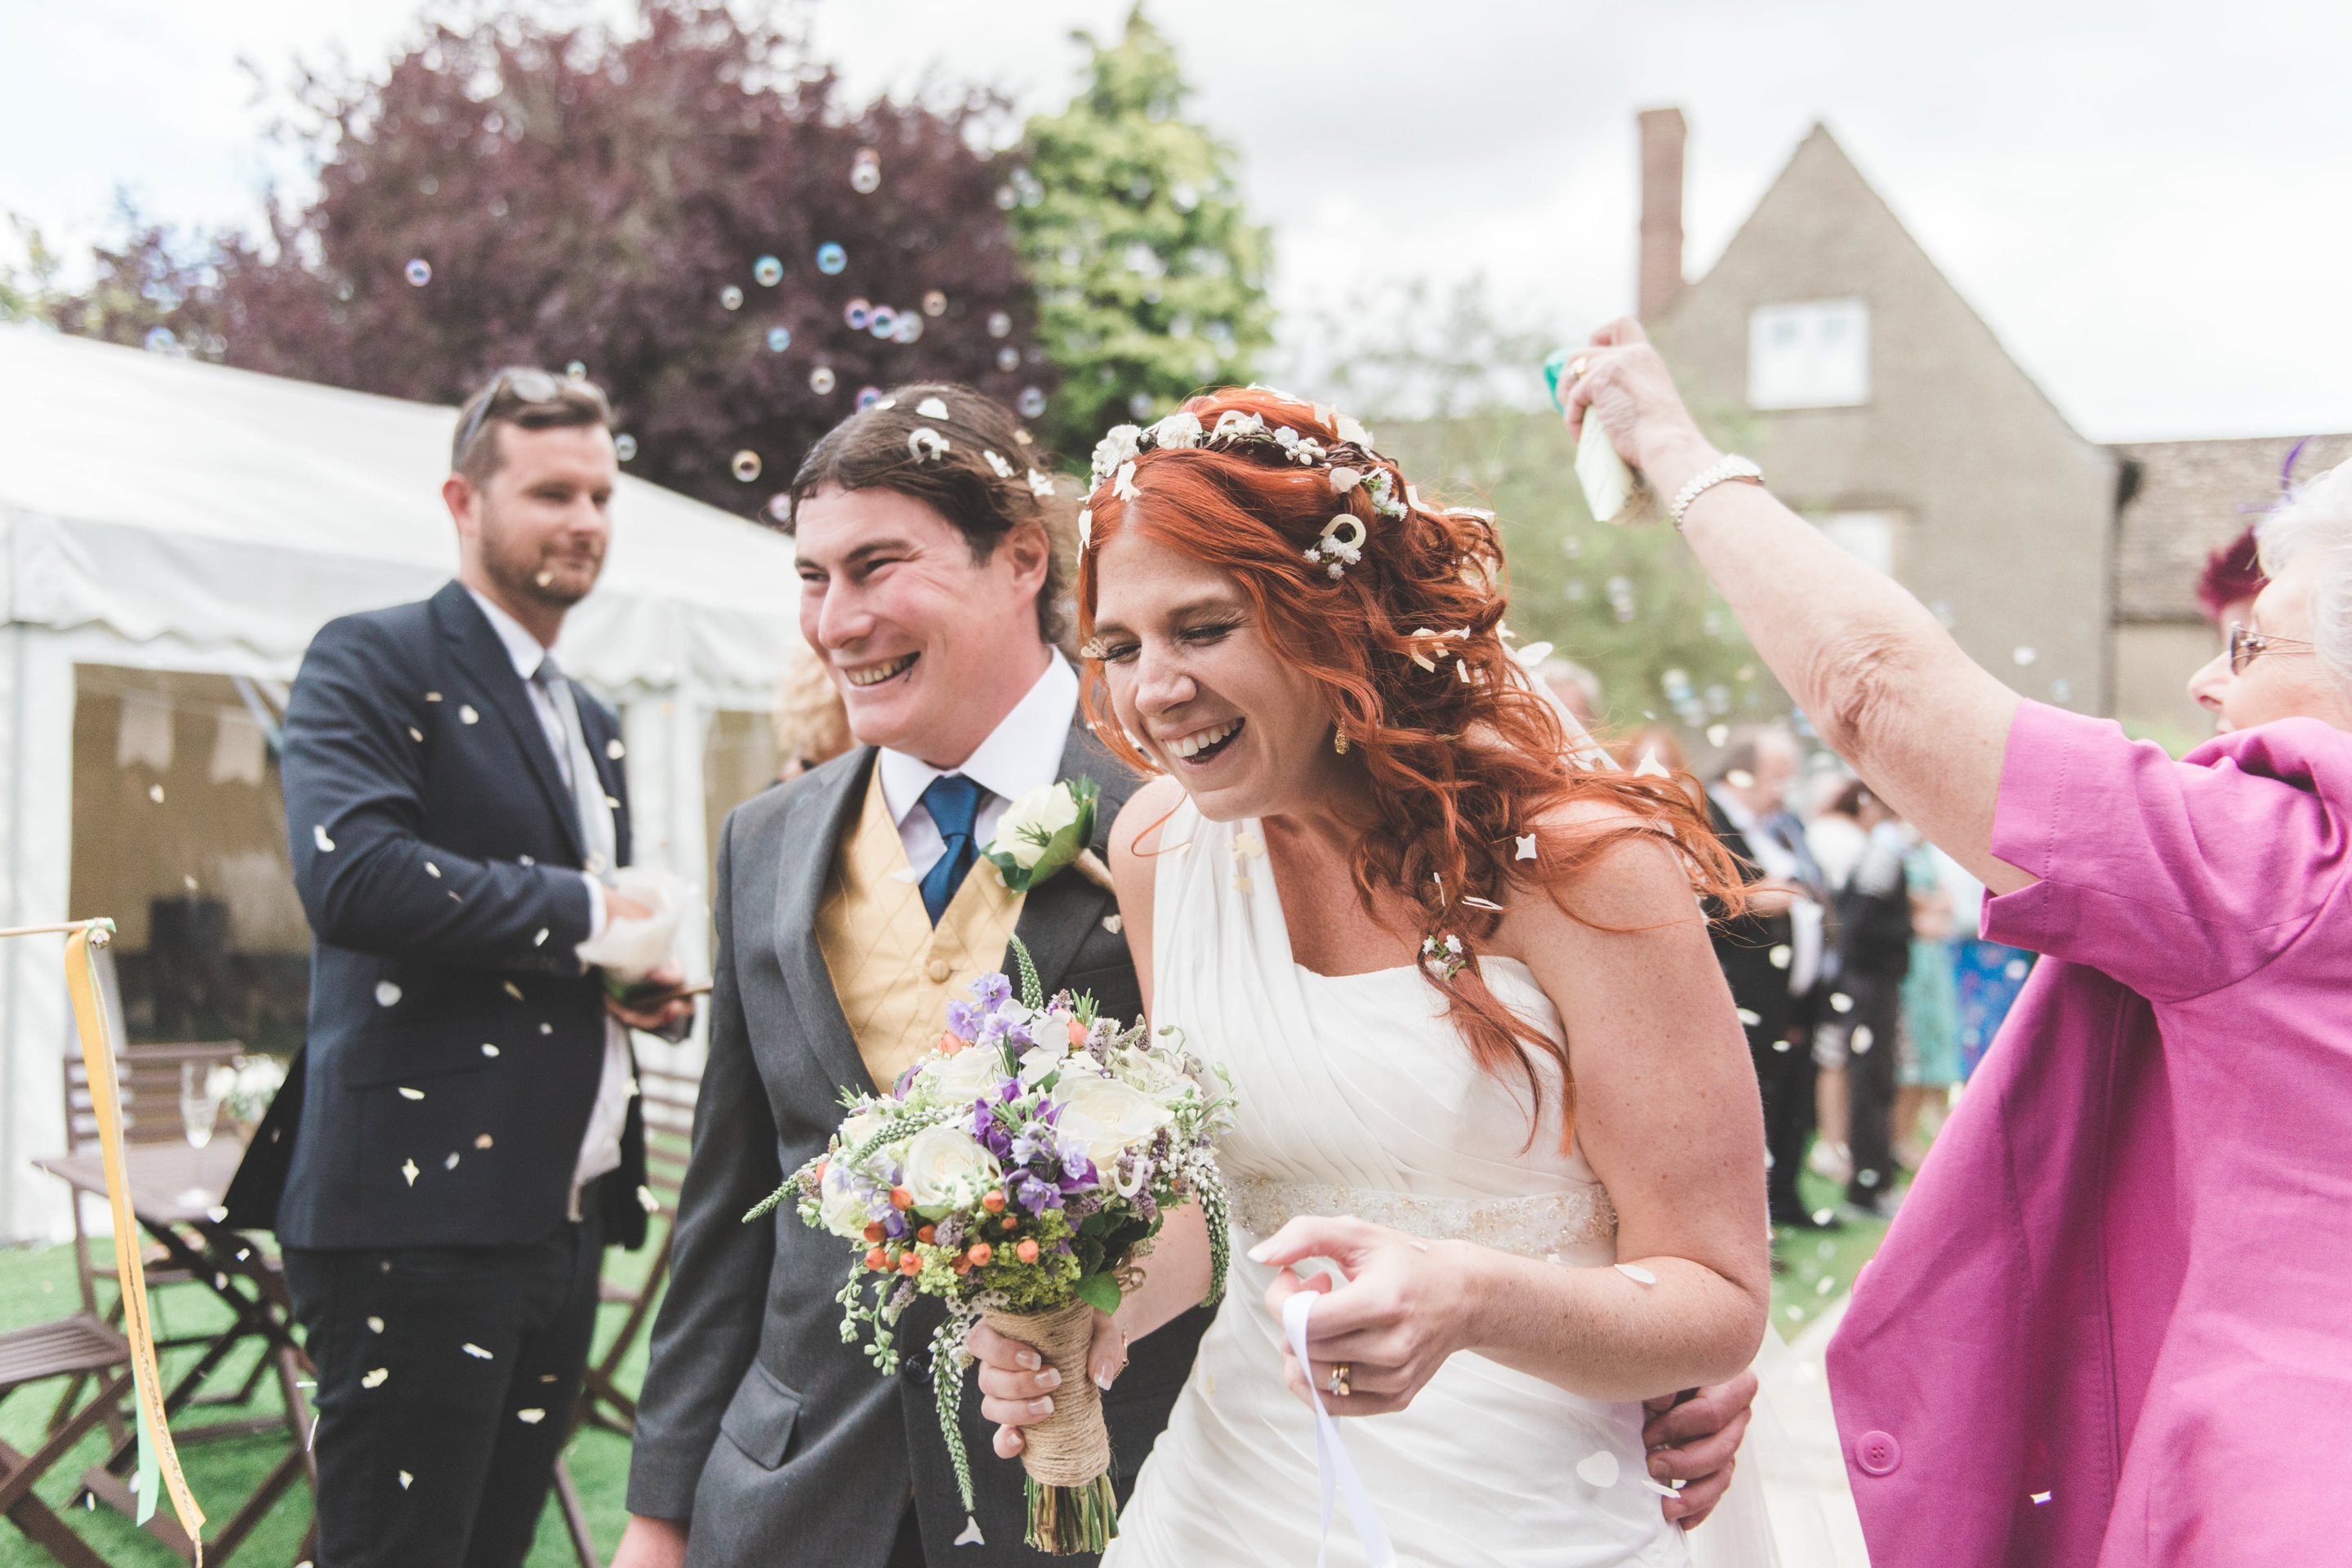 Trouwfotograaf Wenen - Bride and Groom at a fun wedding in England